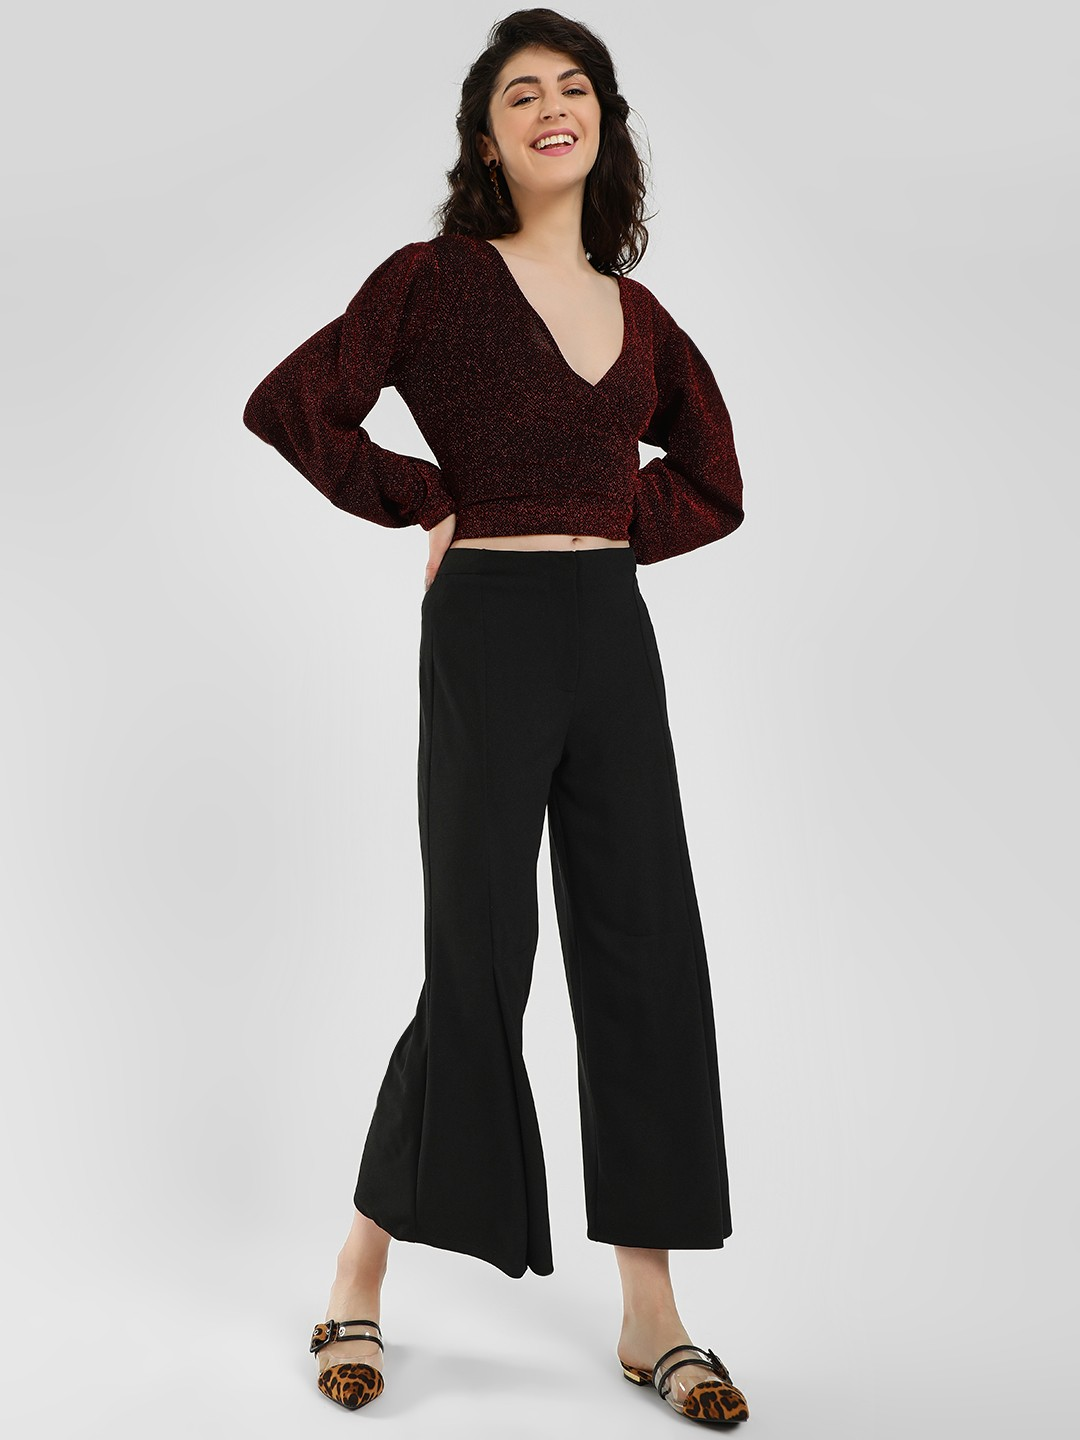 Femella Black Front Slit Casual Trousers 1